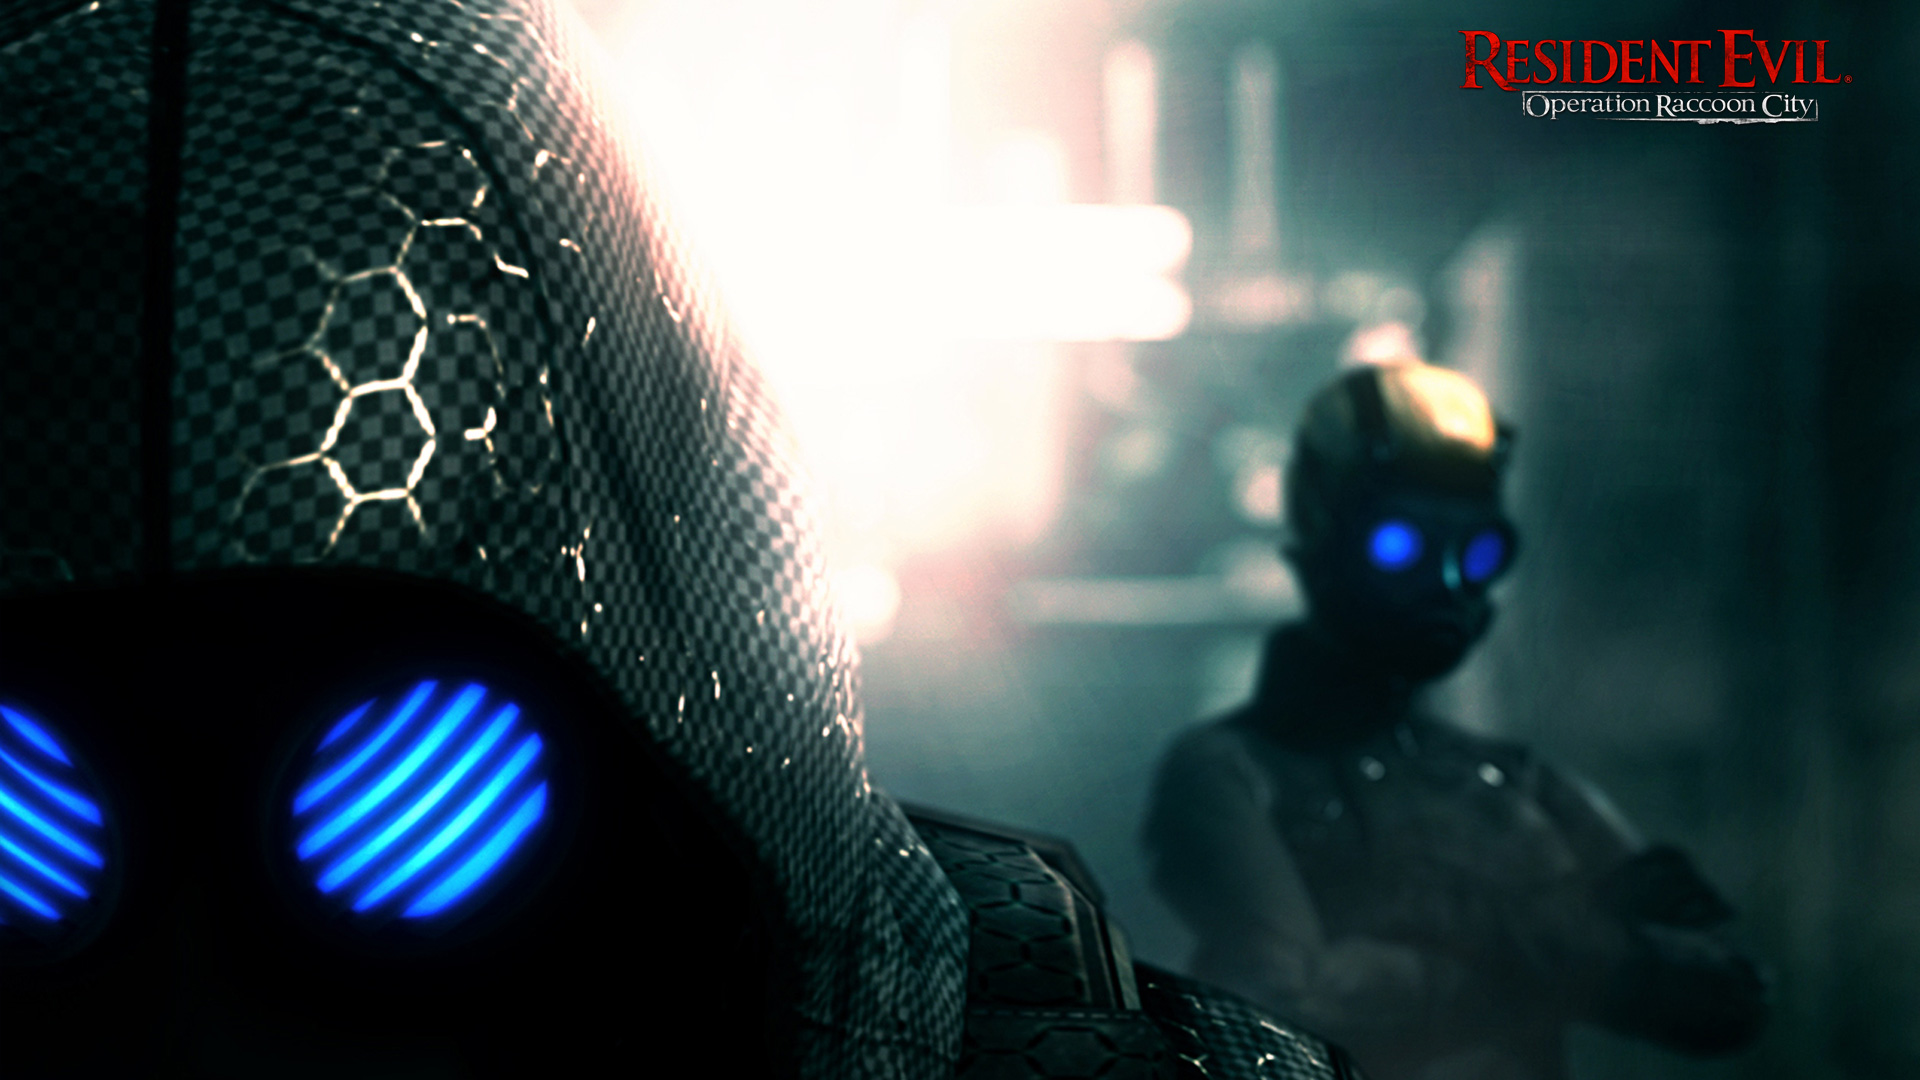 Resident Evil: Operation Raccoon City Wallpaper in 1920x1080